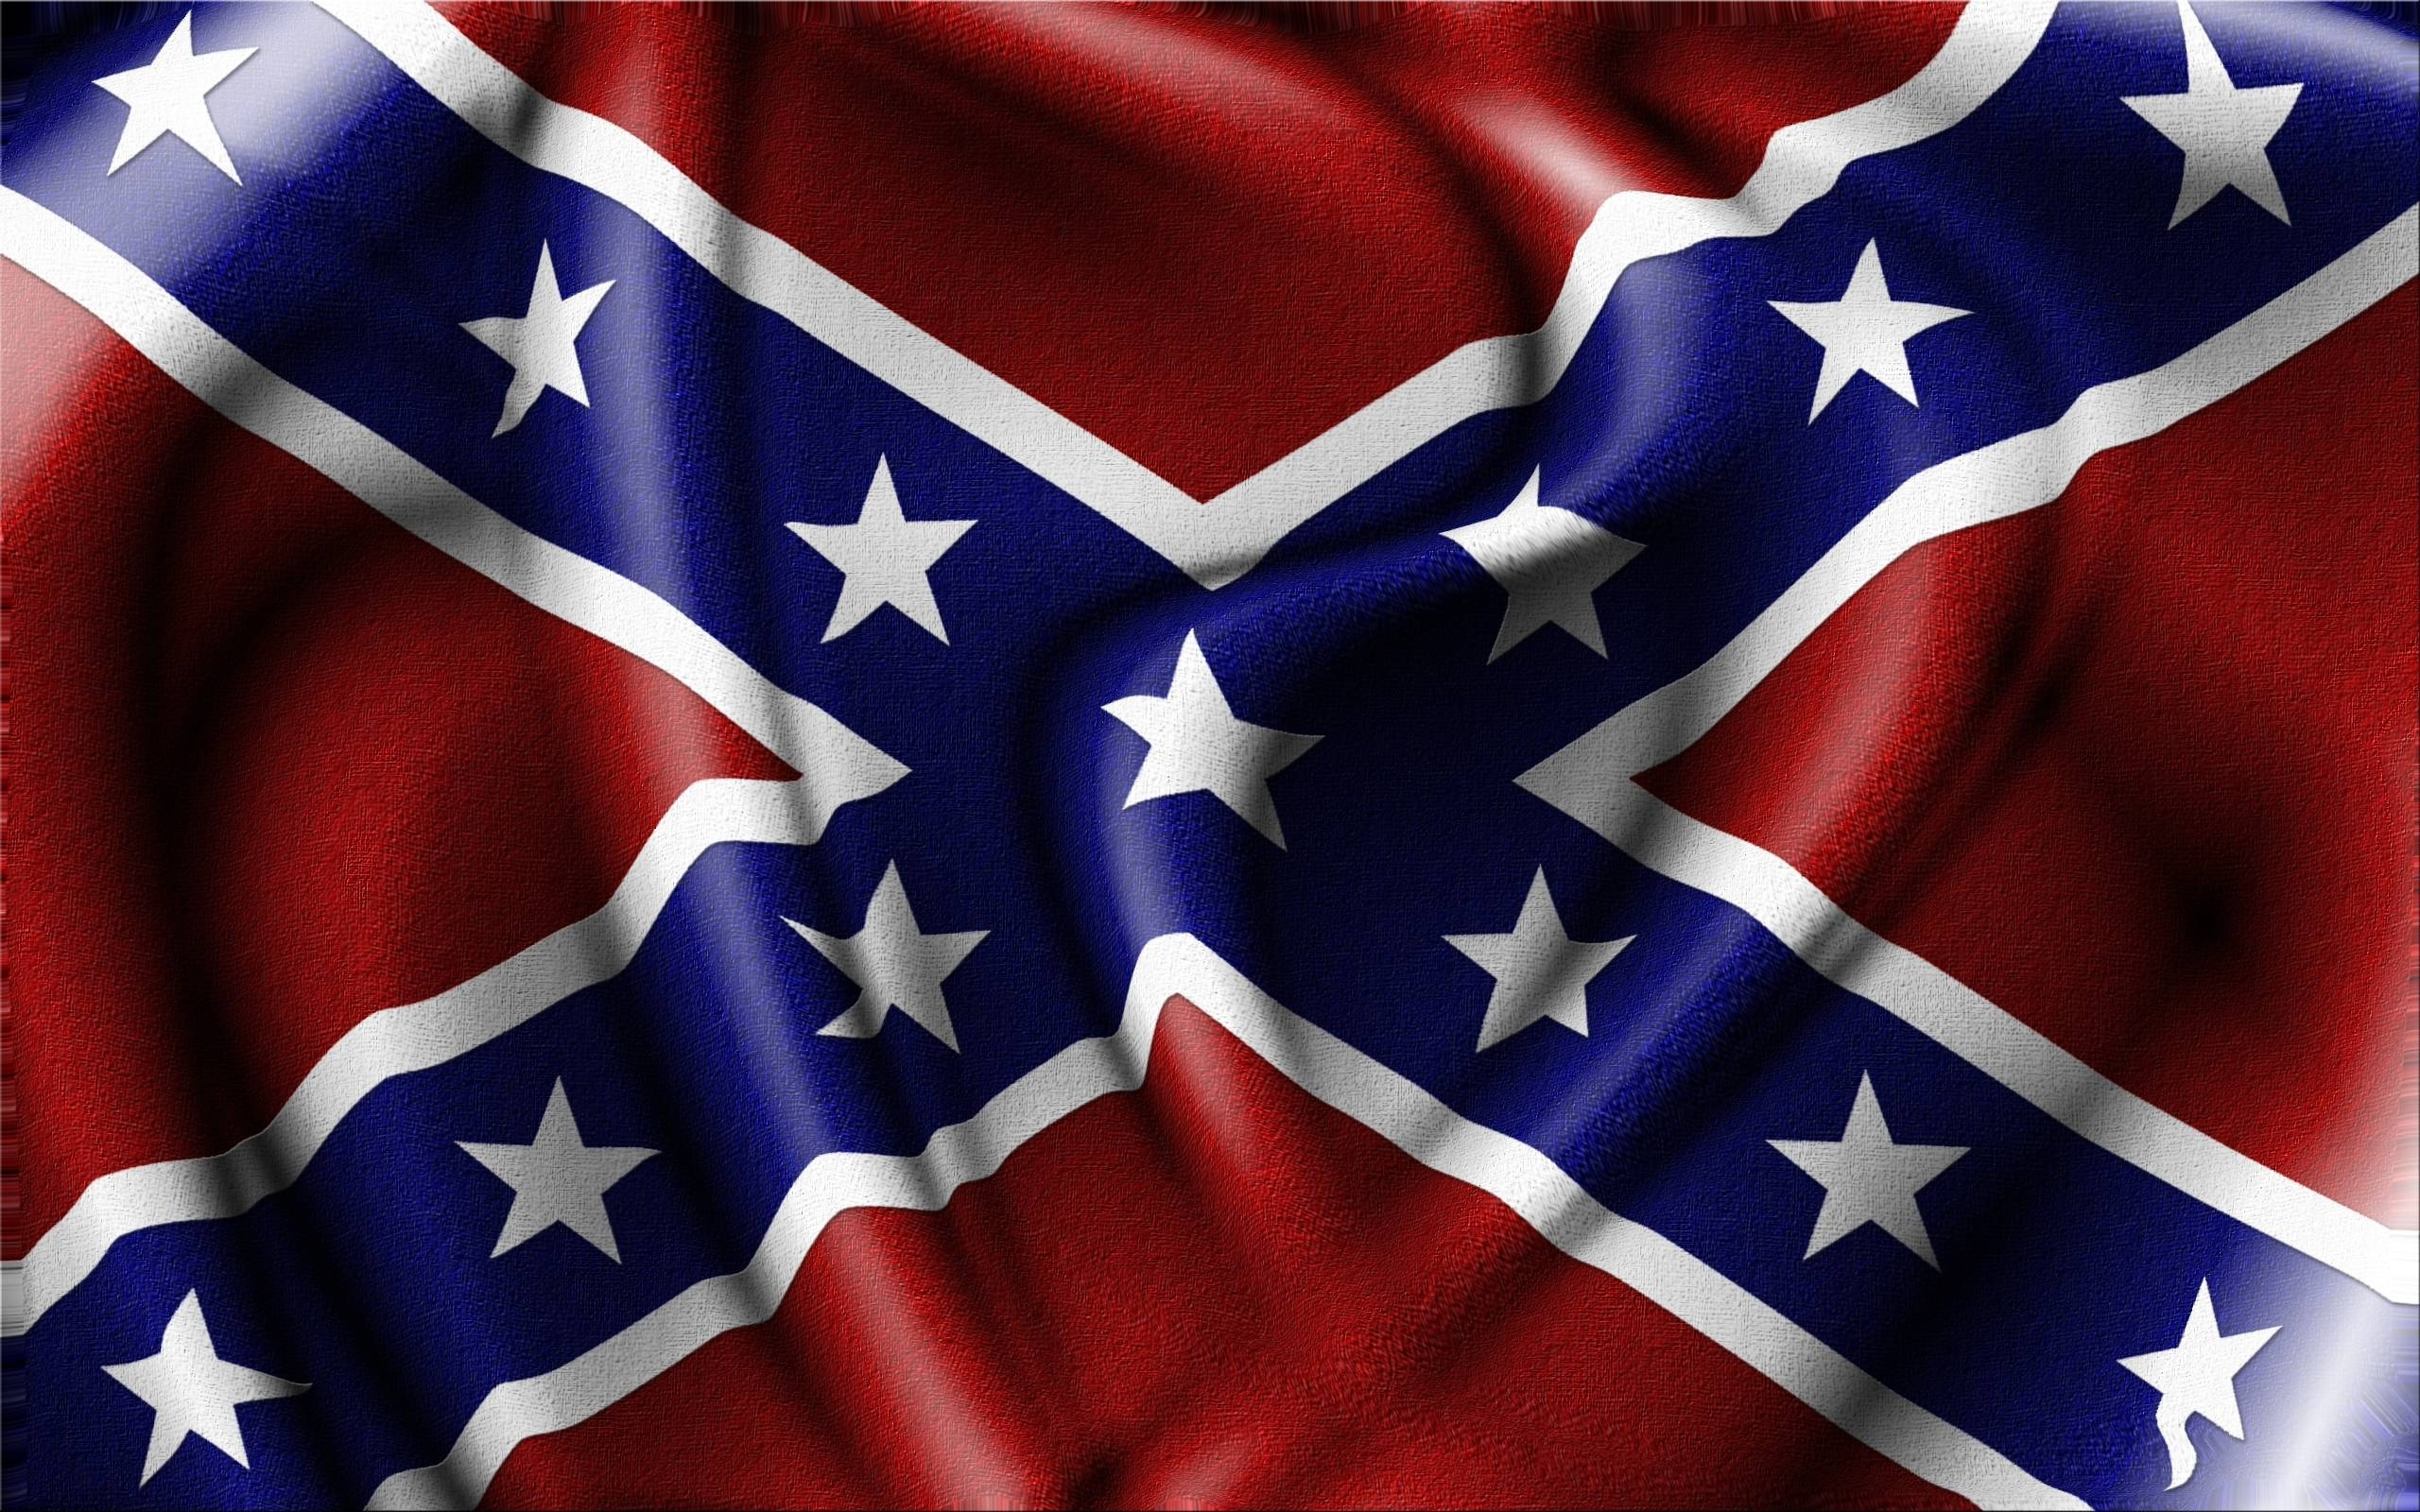 confederate flag wallpapers - wallpaper cave